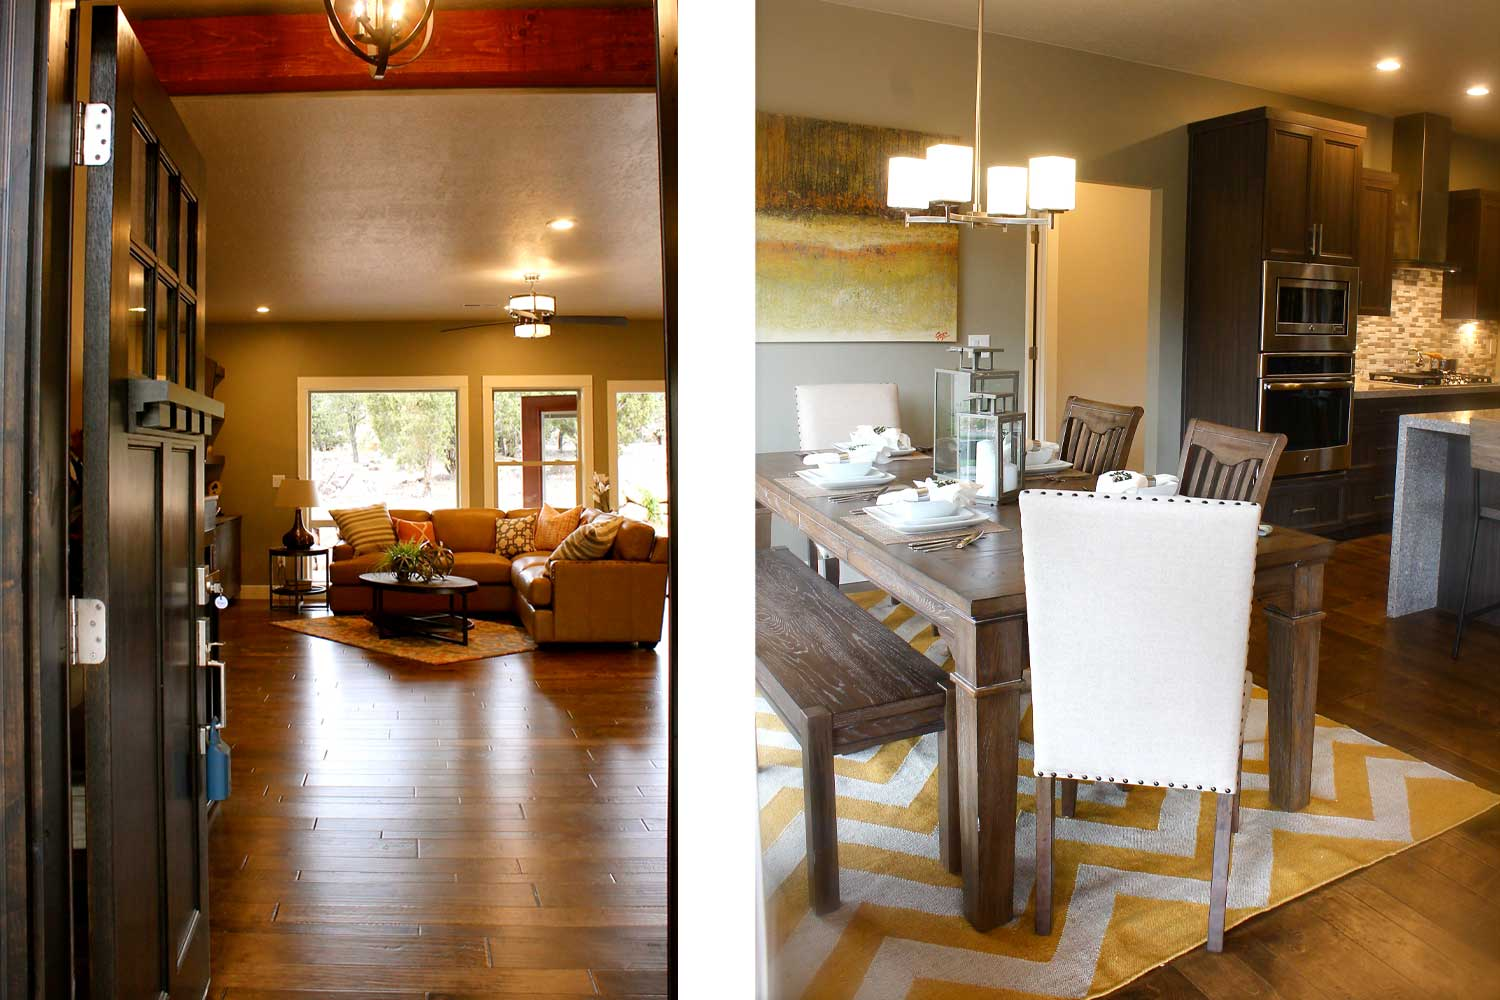 left side of image shows front door open leading to living room couch, right side of image shows dining room table with one bench, two wood chairs, and two white leather chairs